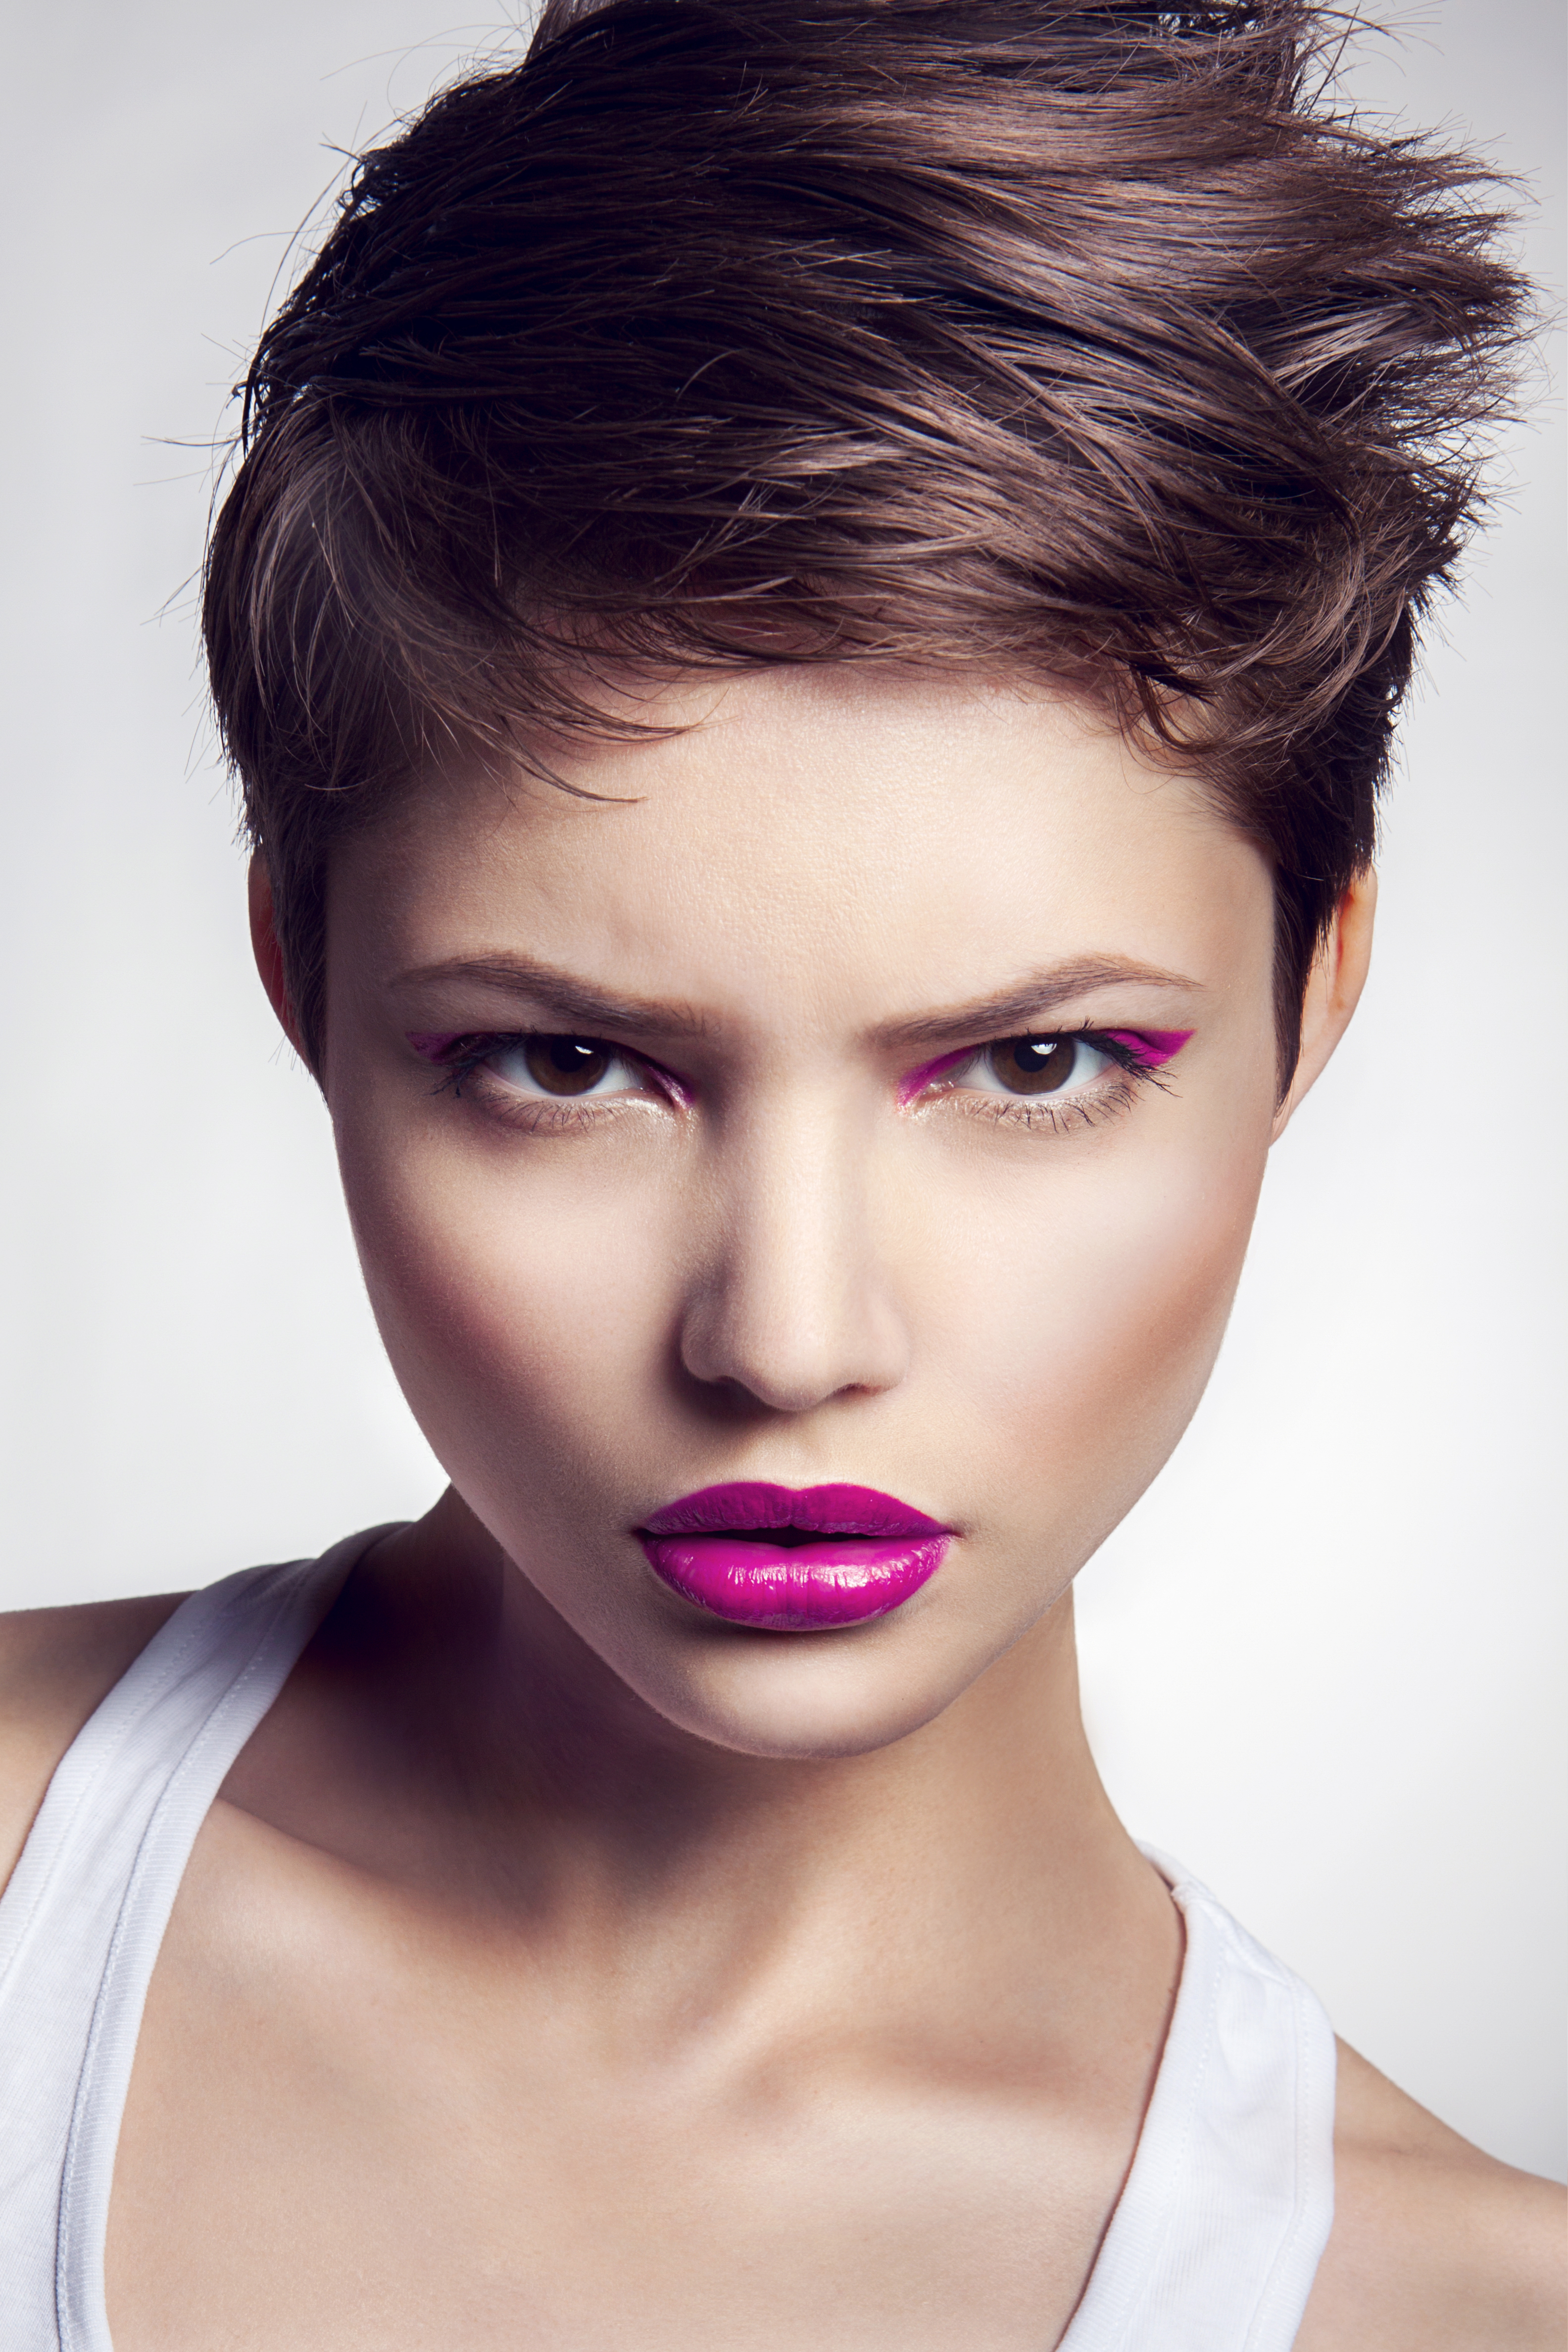 Pixie cut - Renew Hair